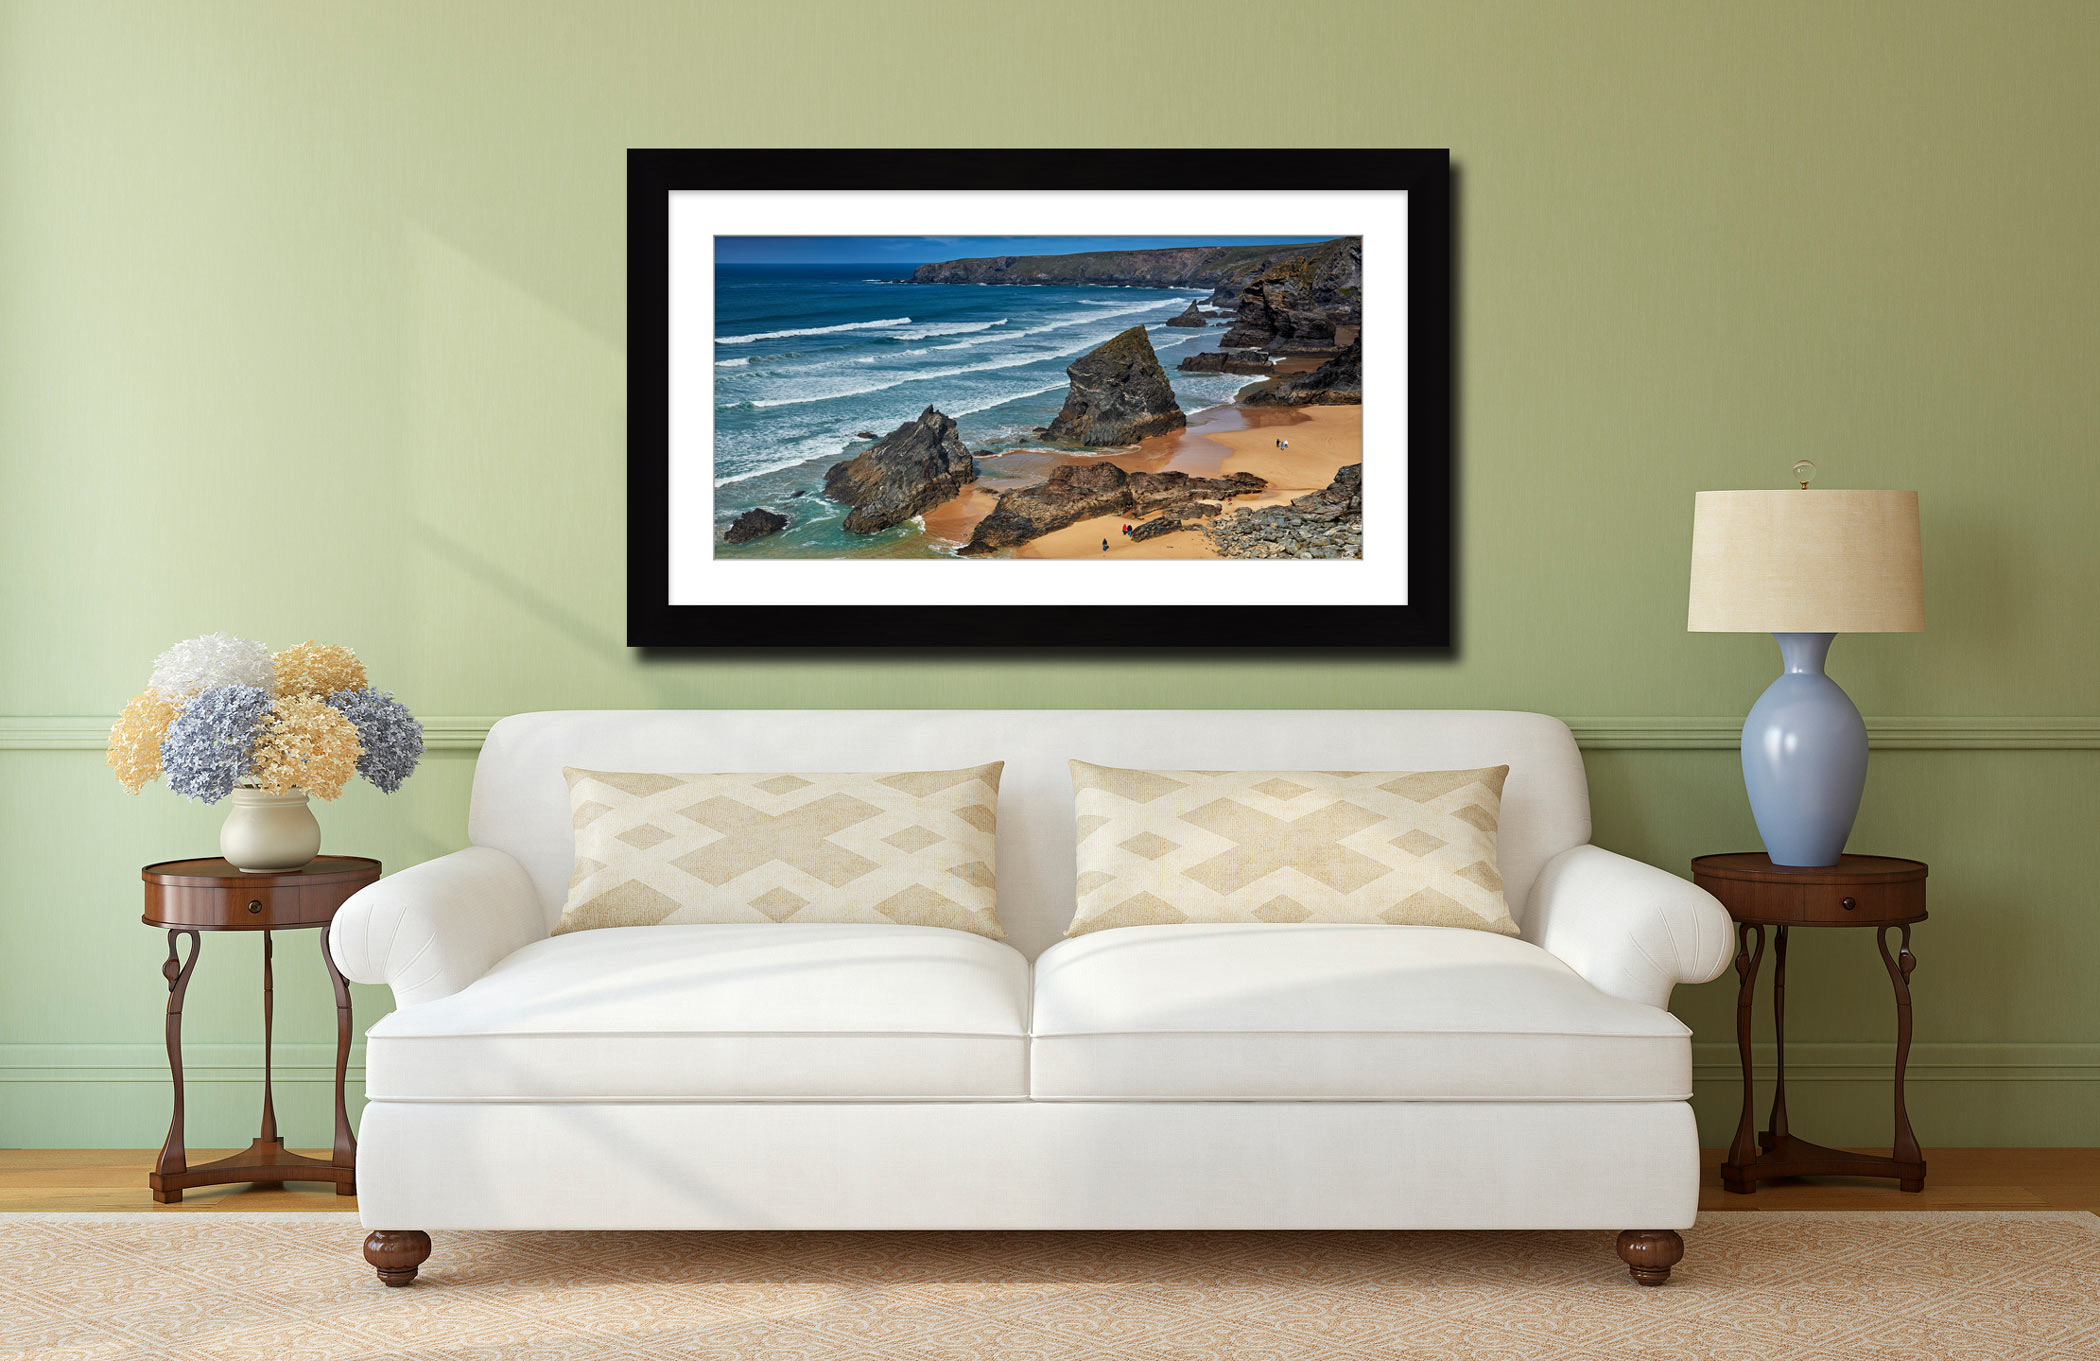 Bedruthan Steps Beach Rocks - Framed Print with Mount on Wall